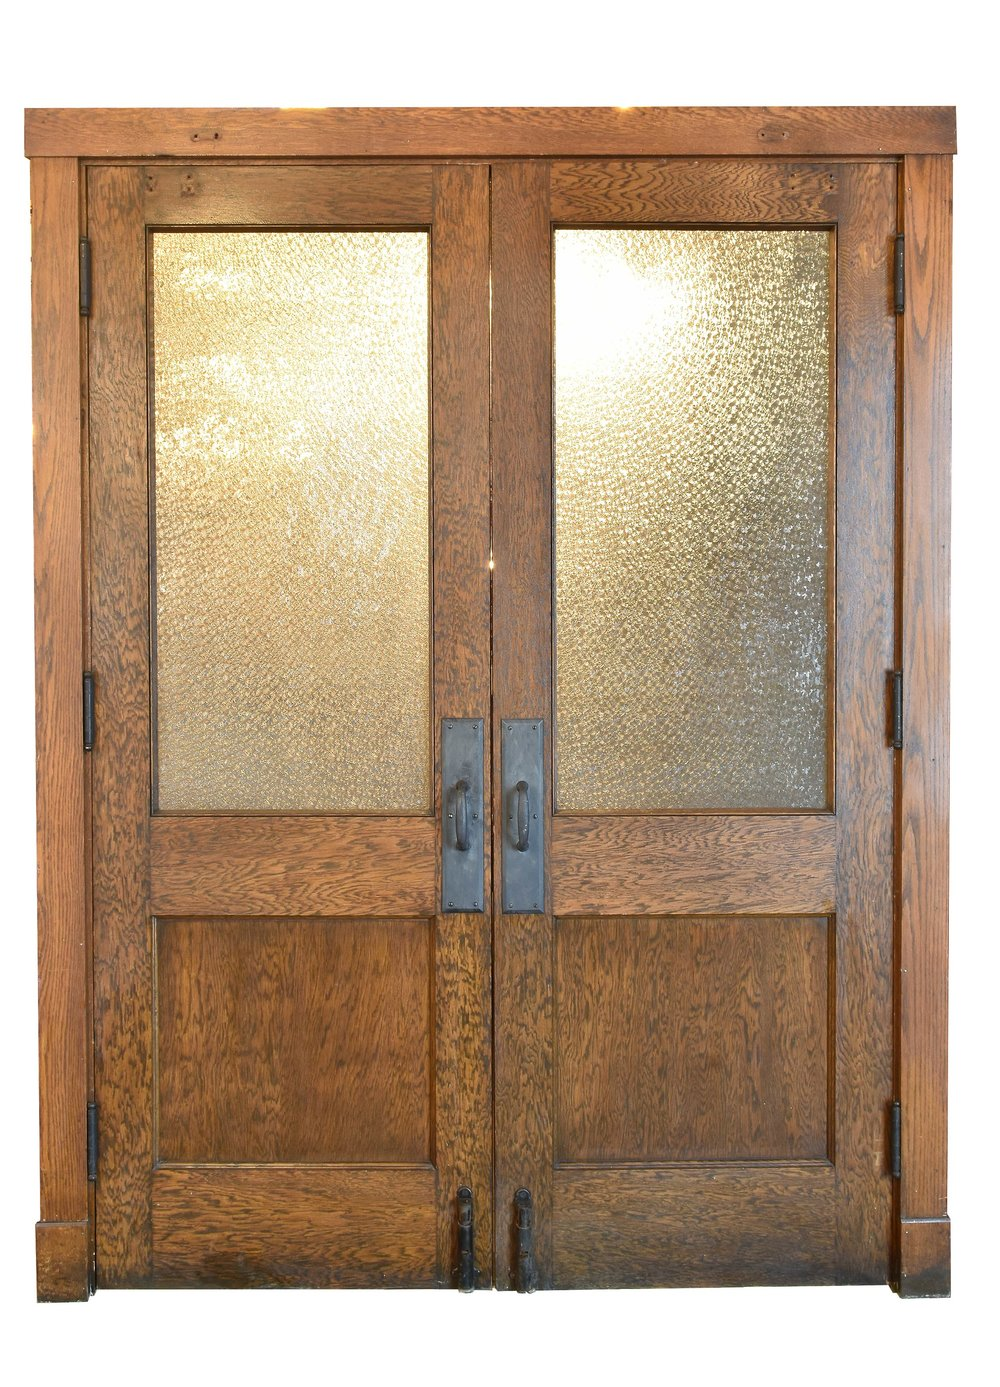 47645 double doors oak in frame.jpg